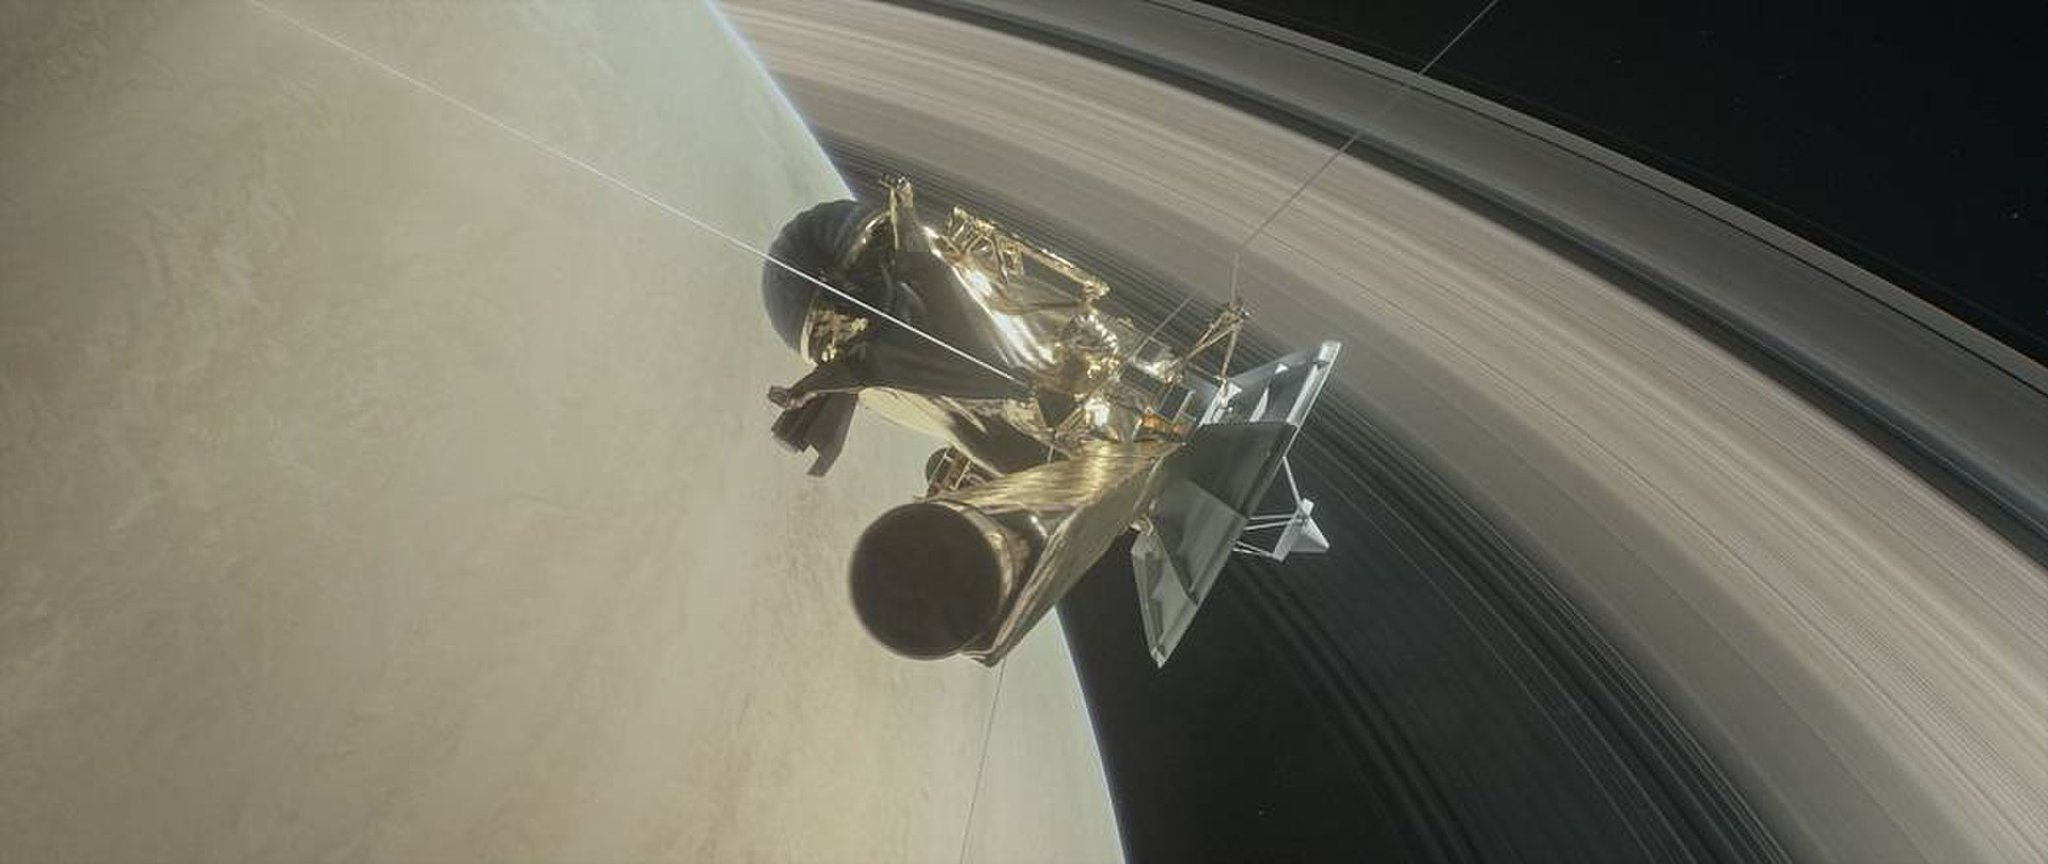 How Cassini Managed to Live Such a Long and Useful Life at Saturn https://t.co/FCrg9d2onD https://t.co/SSadQKOUzT